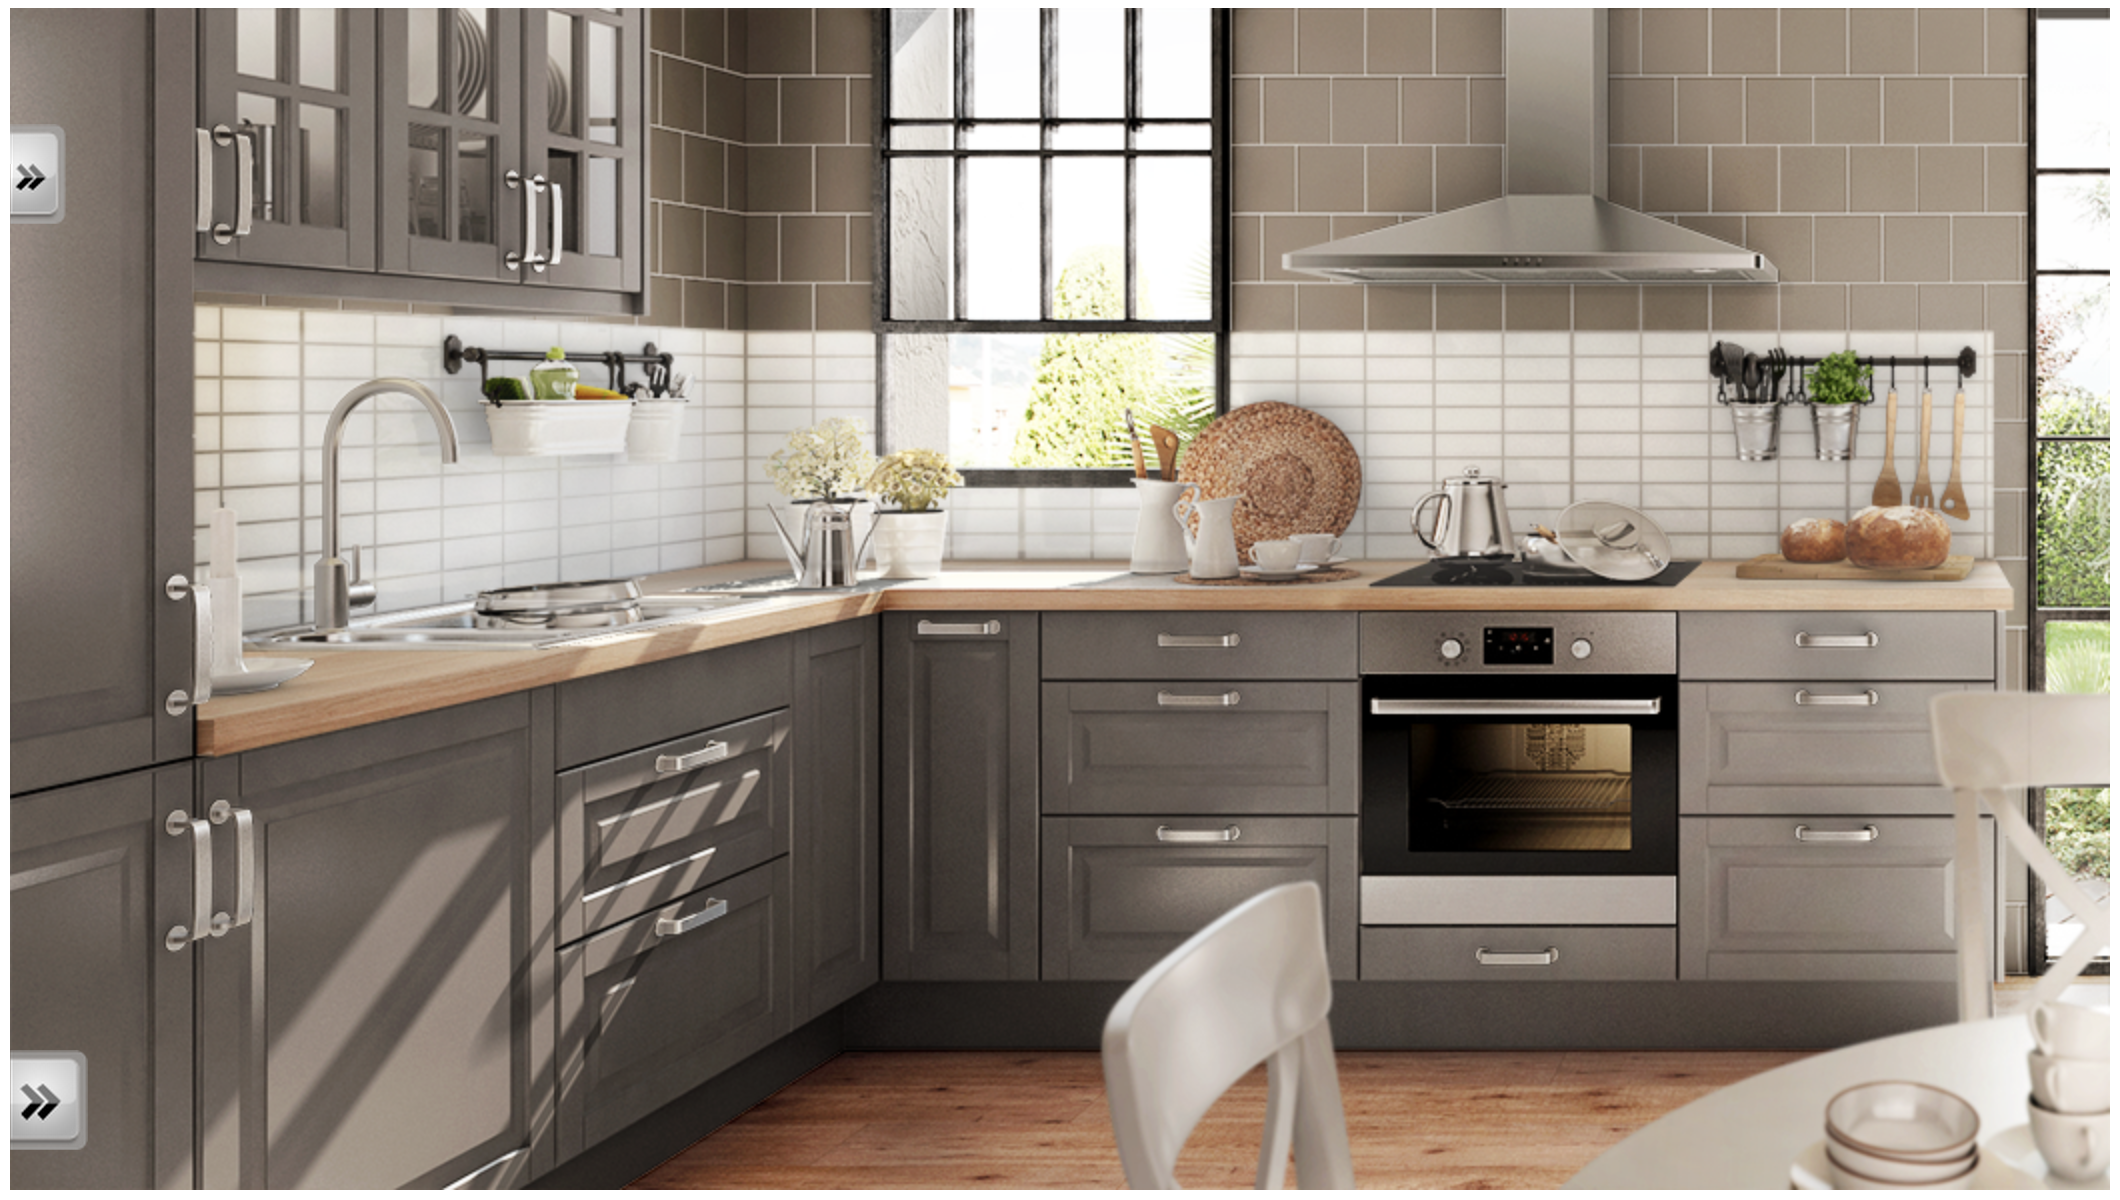 Decoration Exciting L Shaped Kitchen With Grey Cabinet Storage And White Backsplash Tile Also Grey Kitchen Designs Kitchen Cabinet Remodel Ikea Bodbyn Kitchen